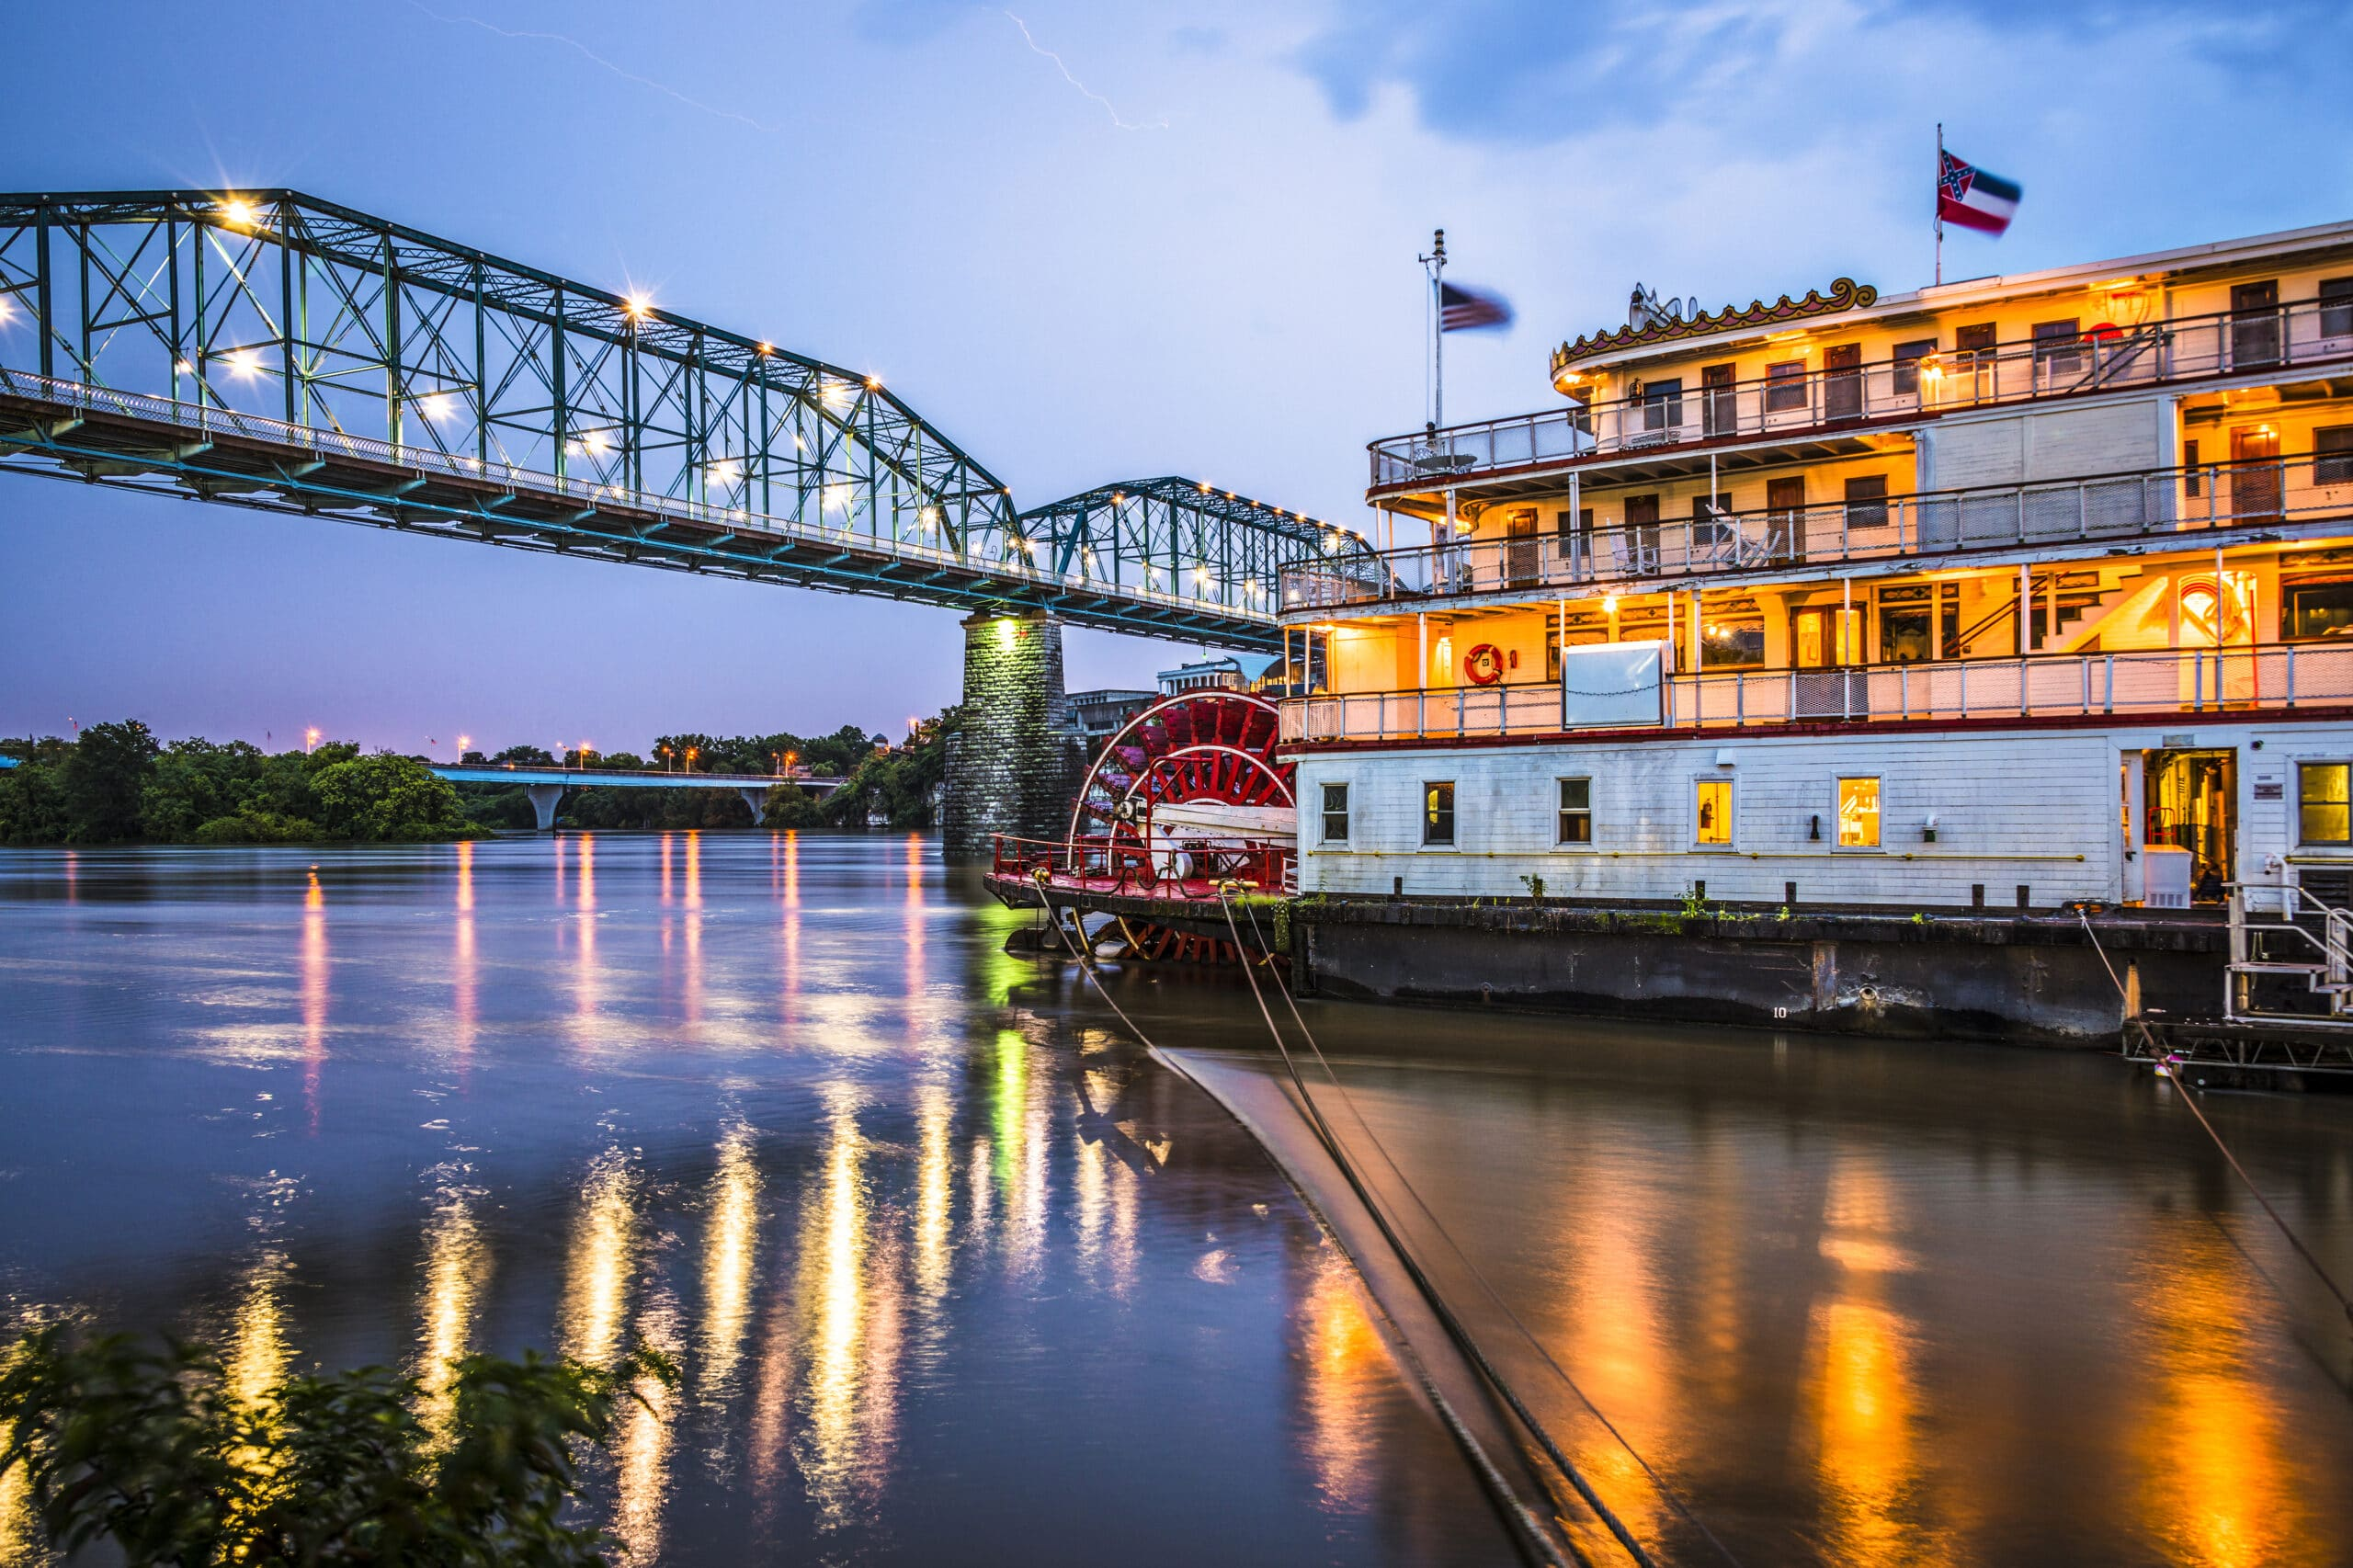 chattanooga bridge and riverboat at dusk // Chattanooga, Tennessee, USA at night on the river